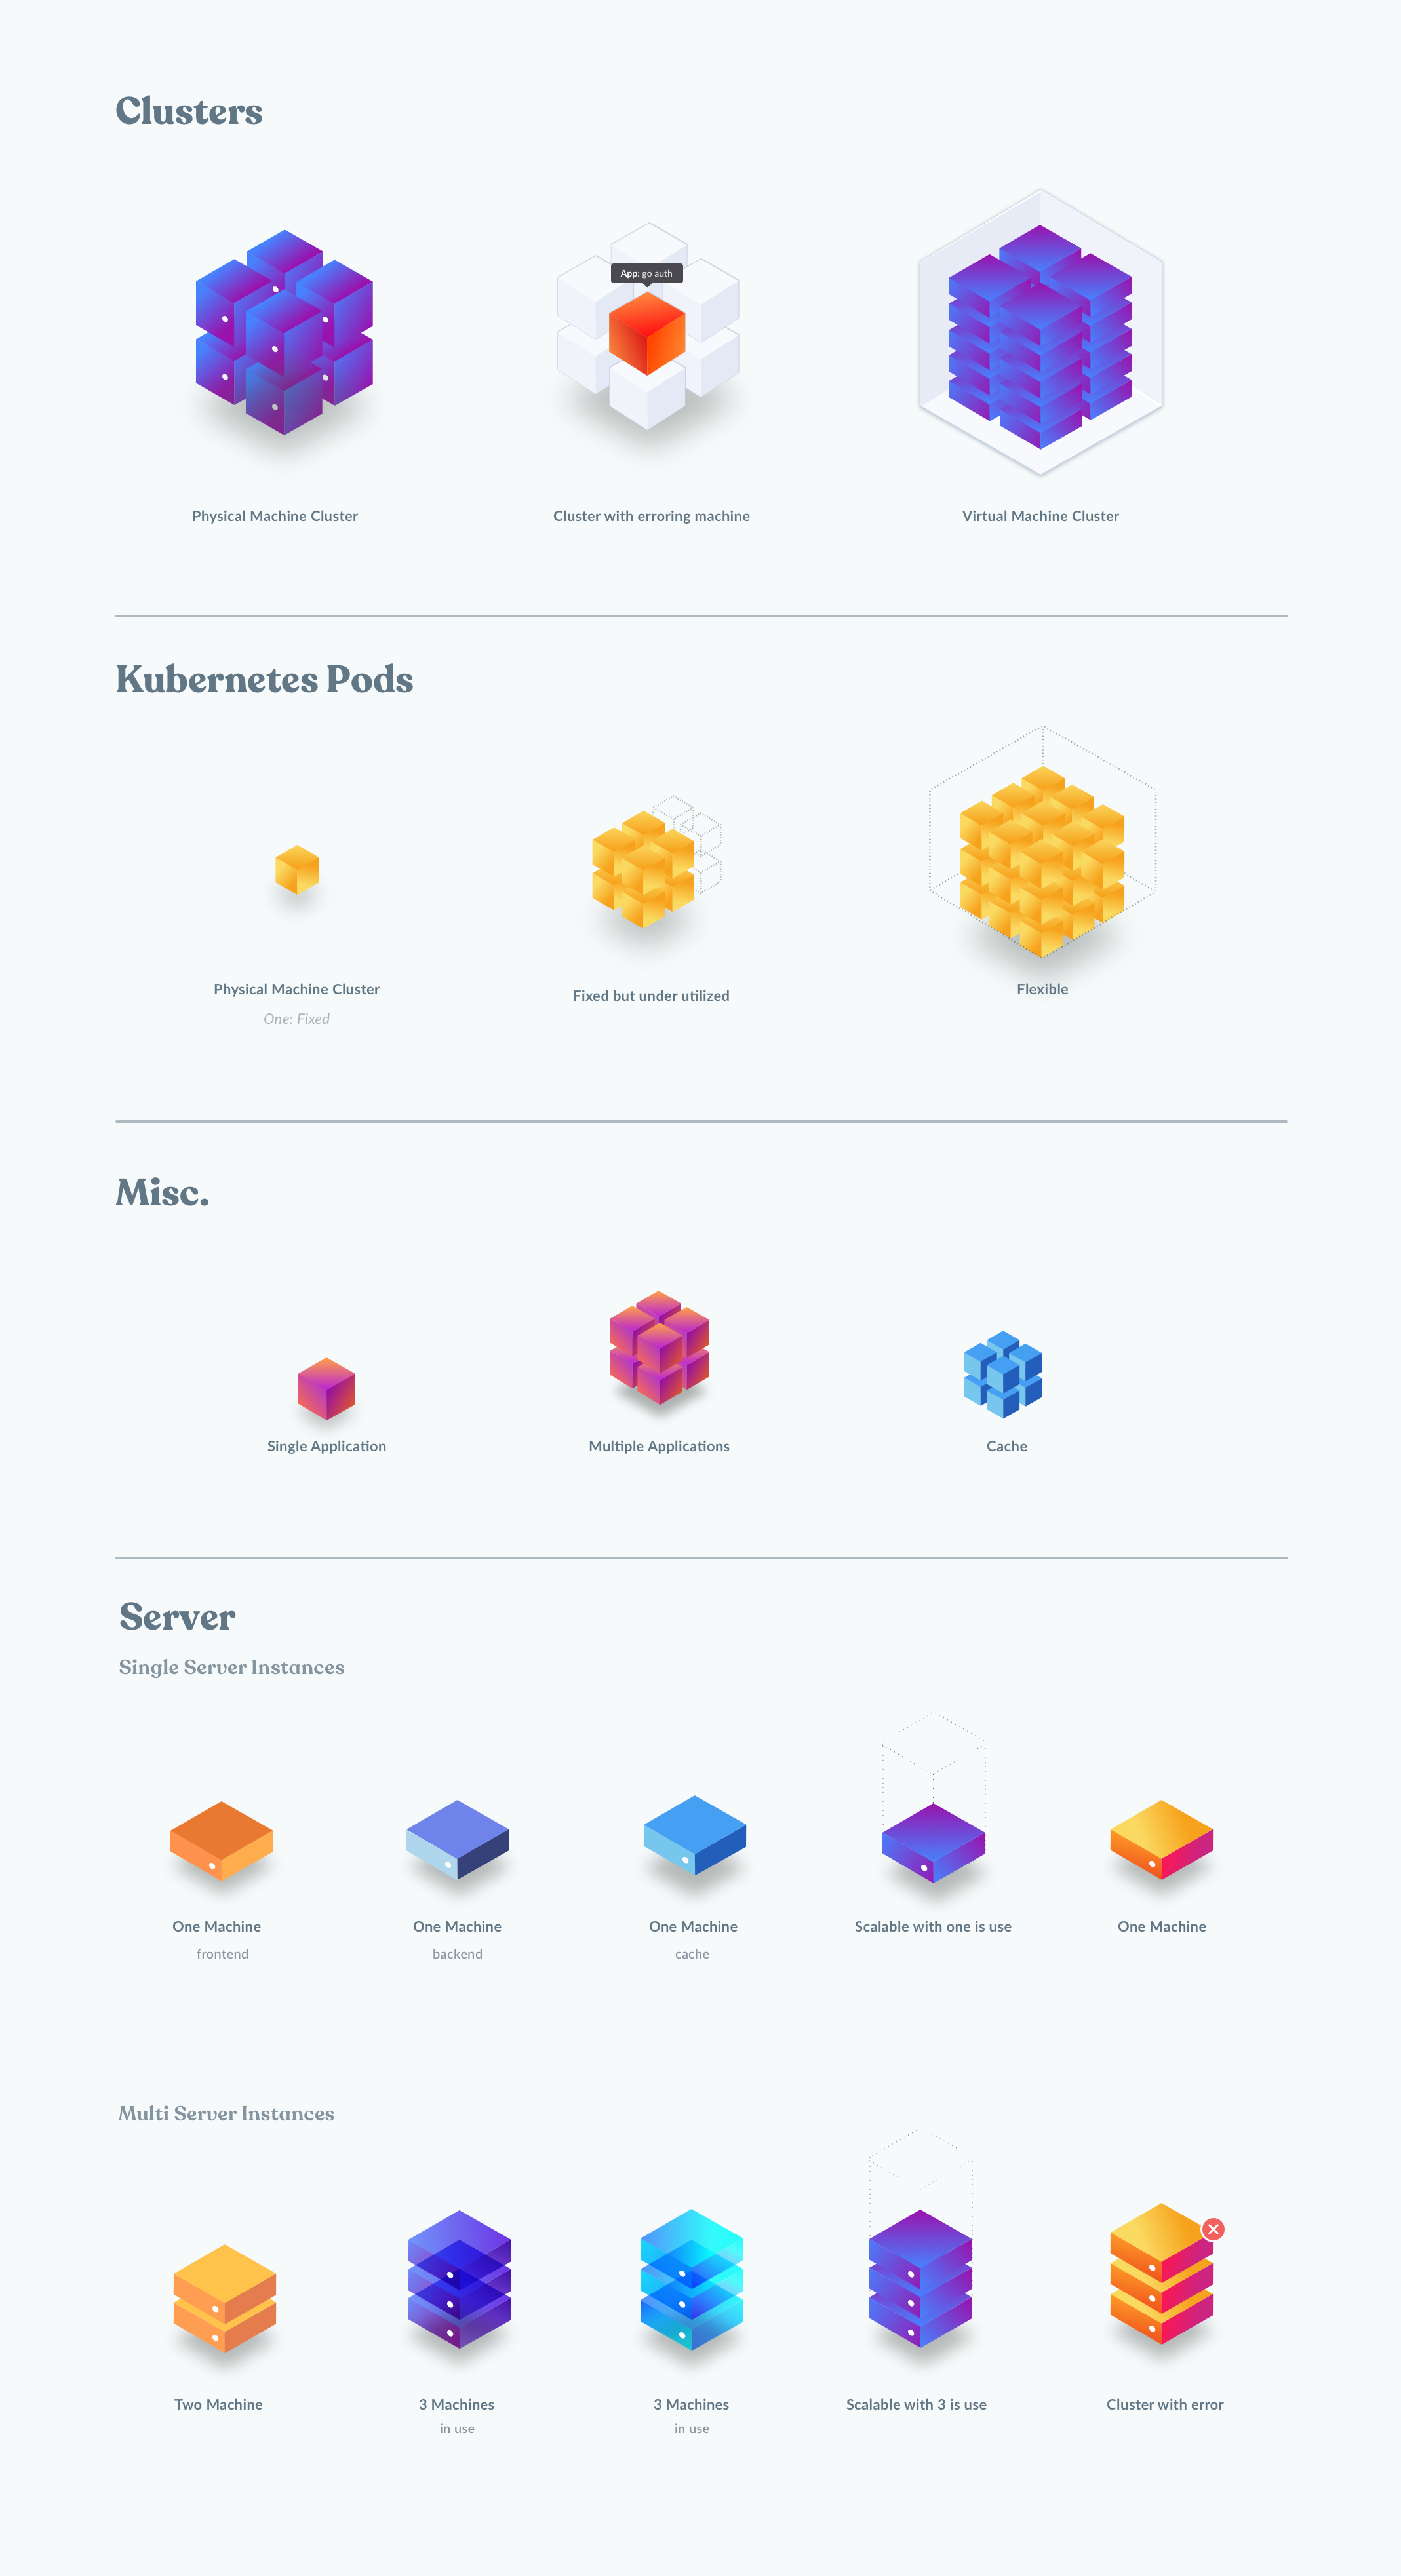 Tech Infrastructure Components - This is an infrastructure component guide. Its elements can be arranged and scaled to visualize any modern companies digital infrastructure.